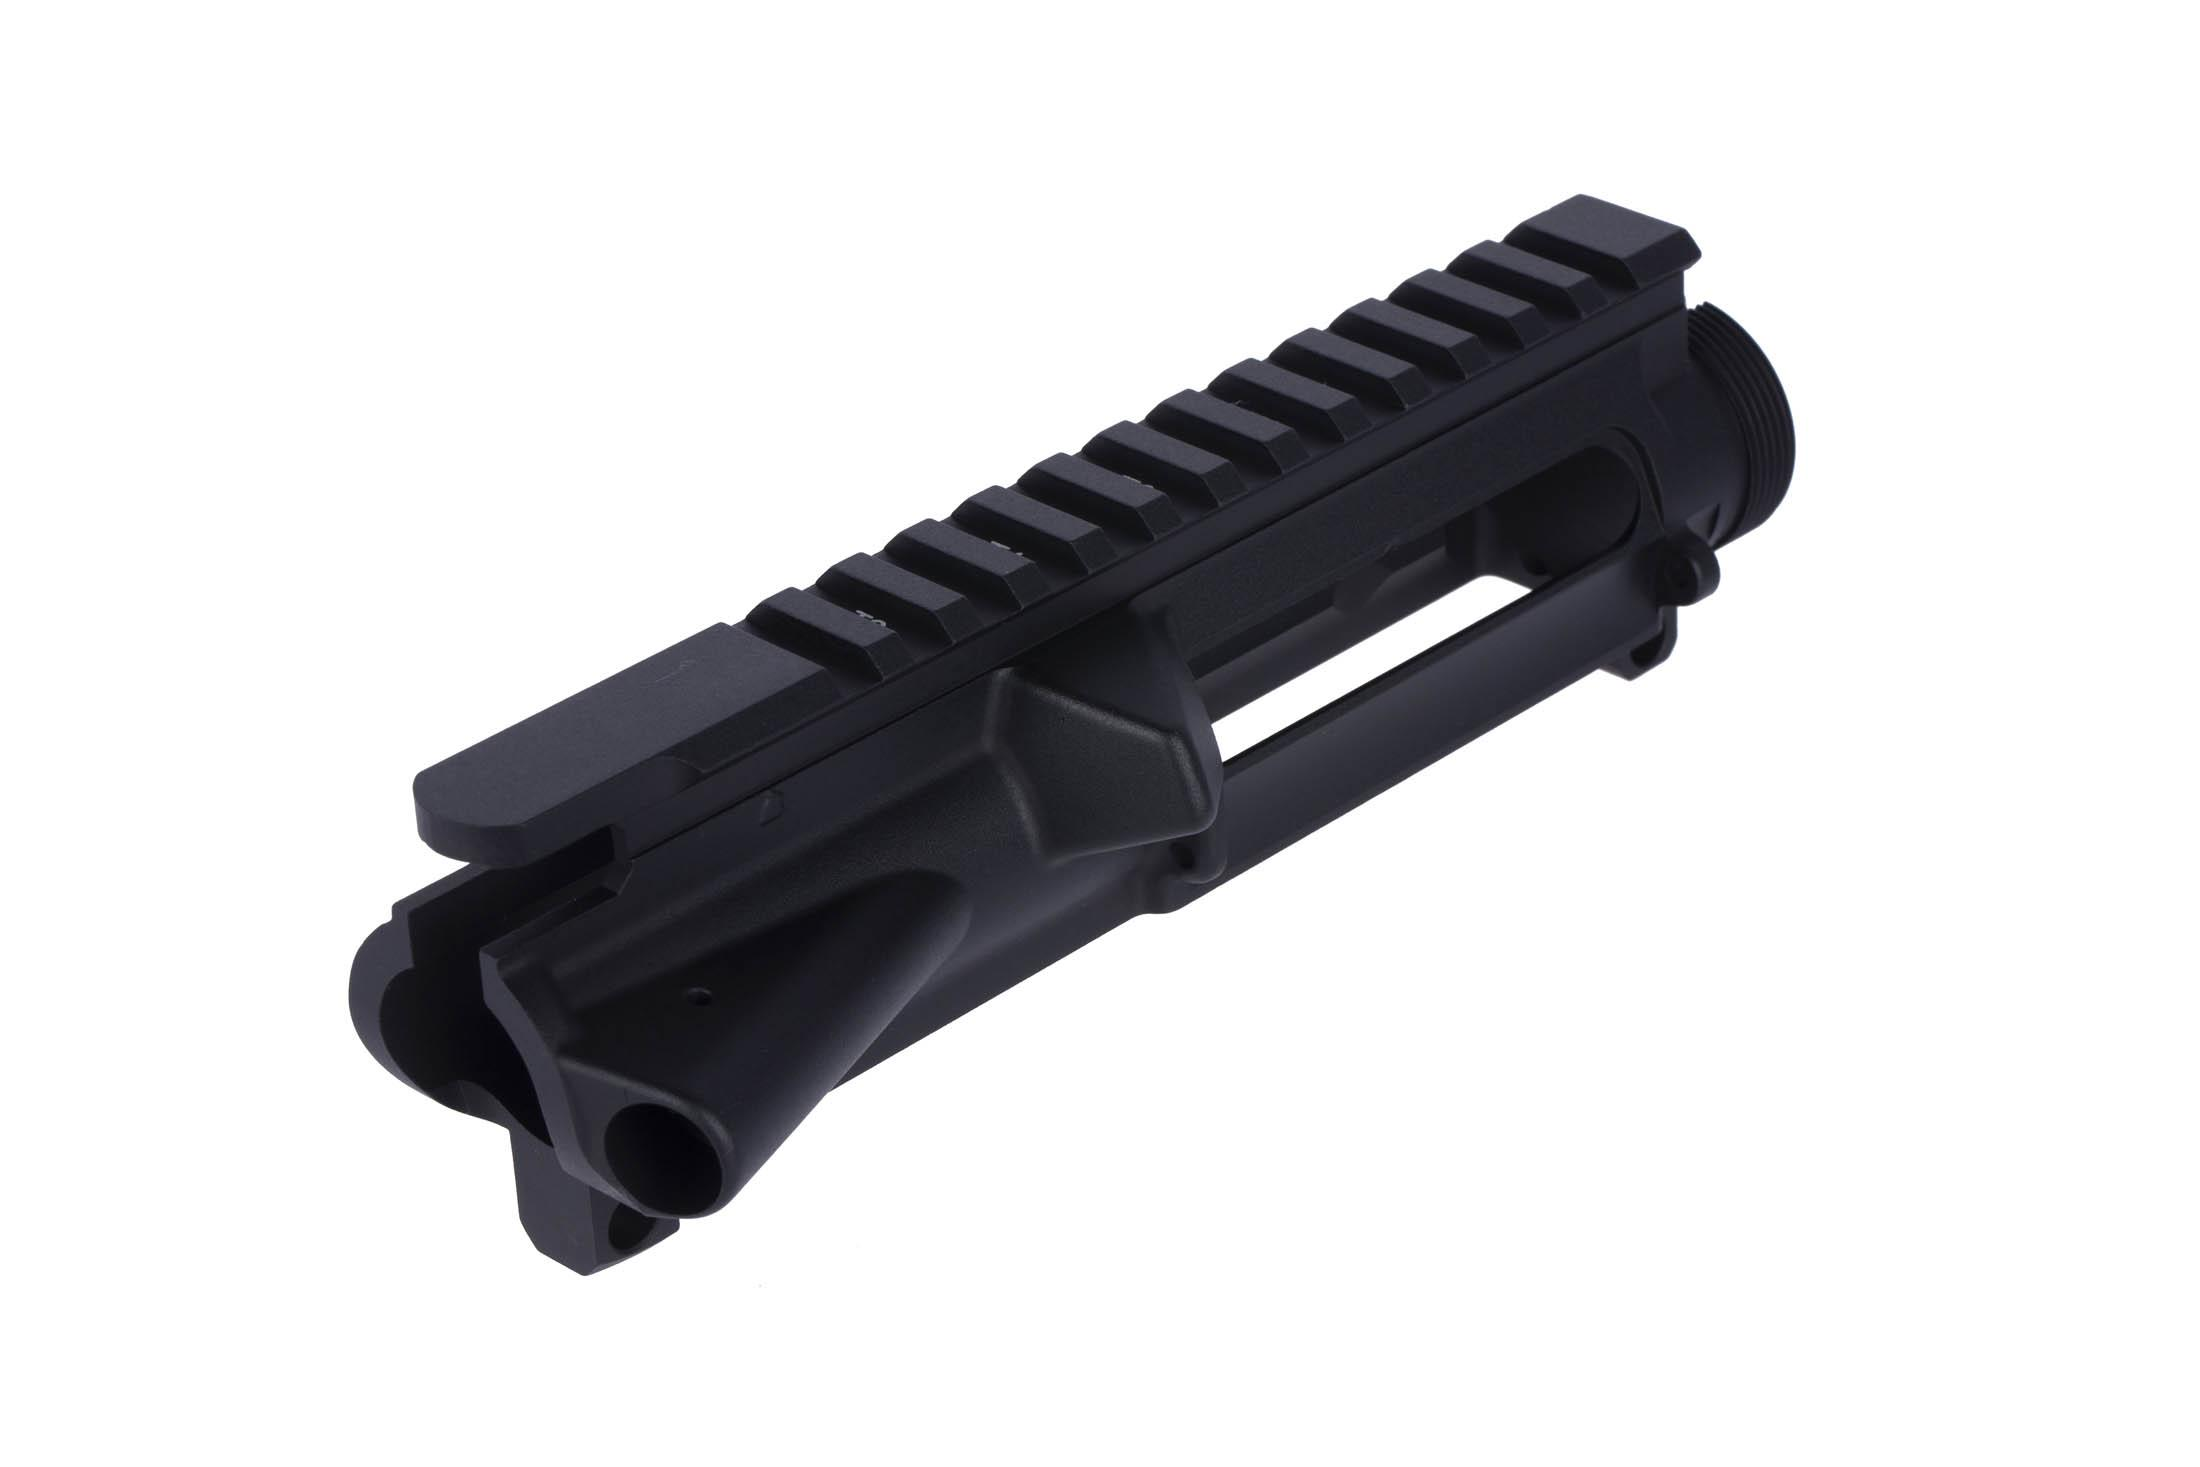 This AR-15 stripped upper receiver includes M4 feed ramps